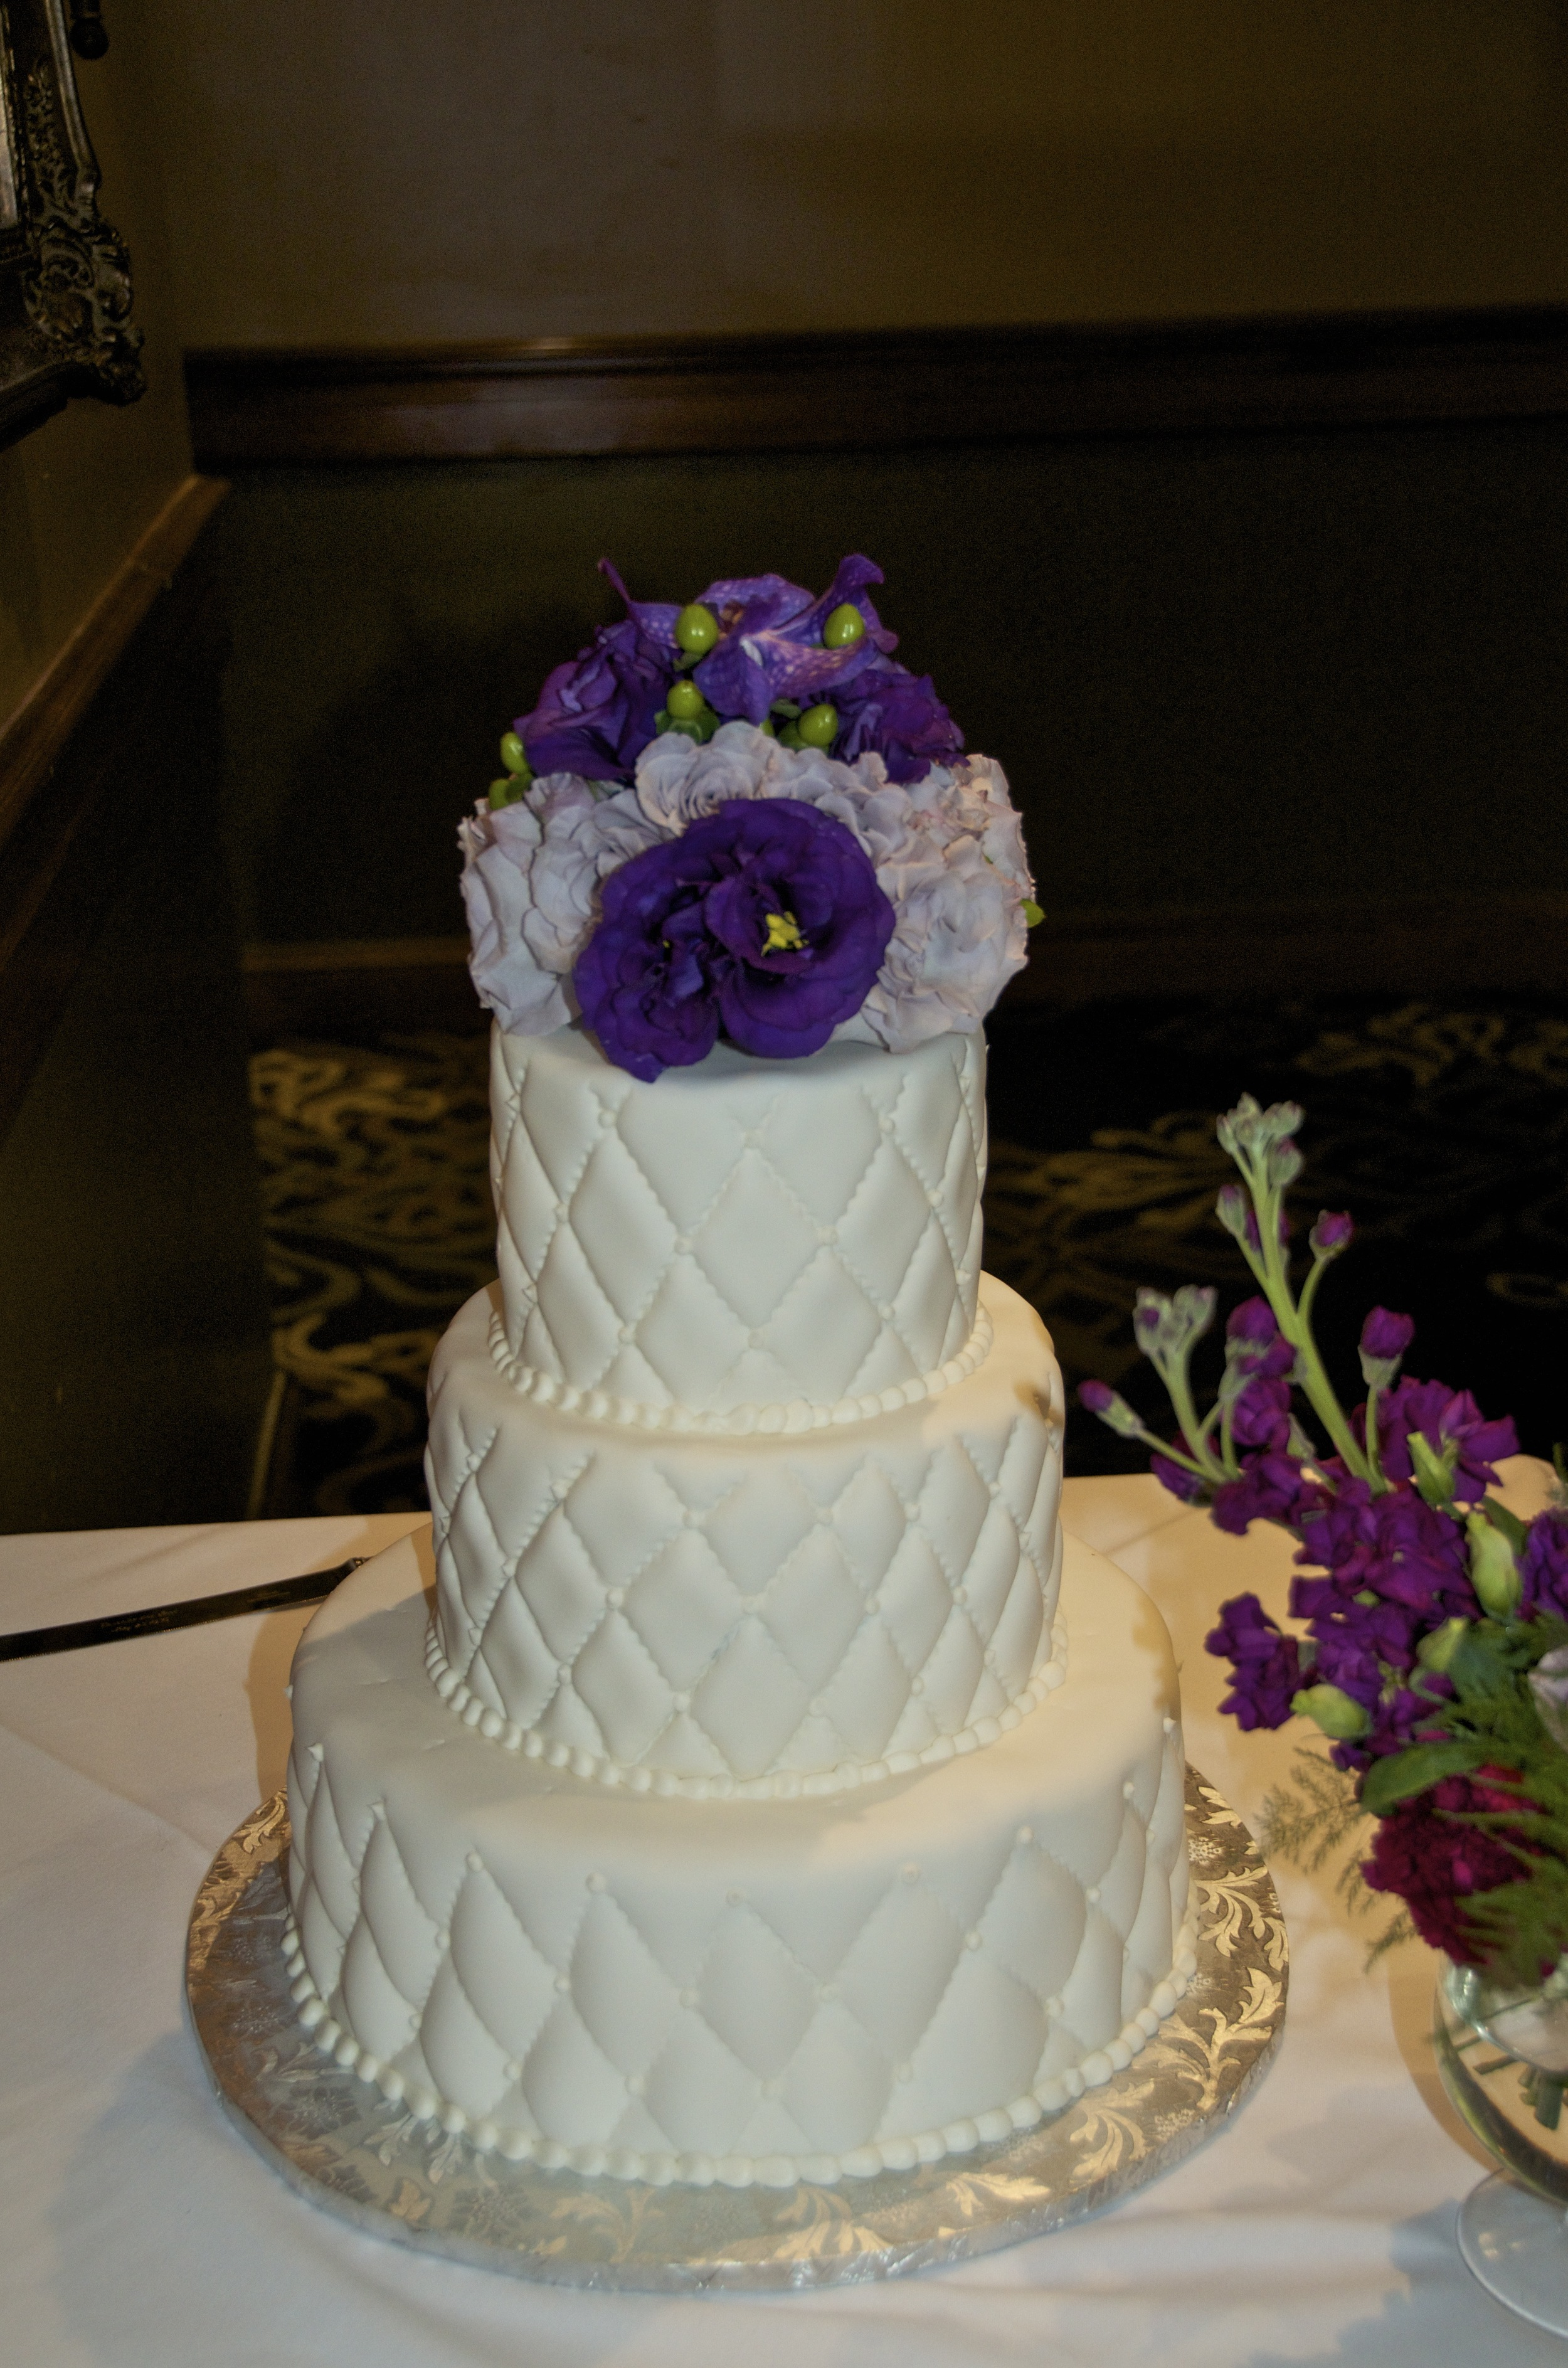 Cake topper made with fresh flowers.